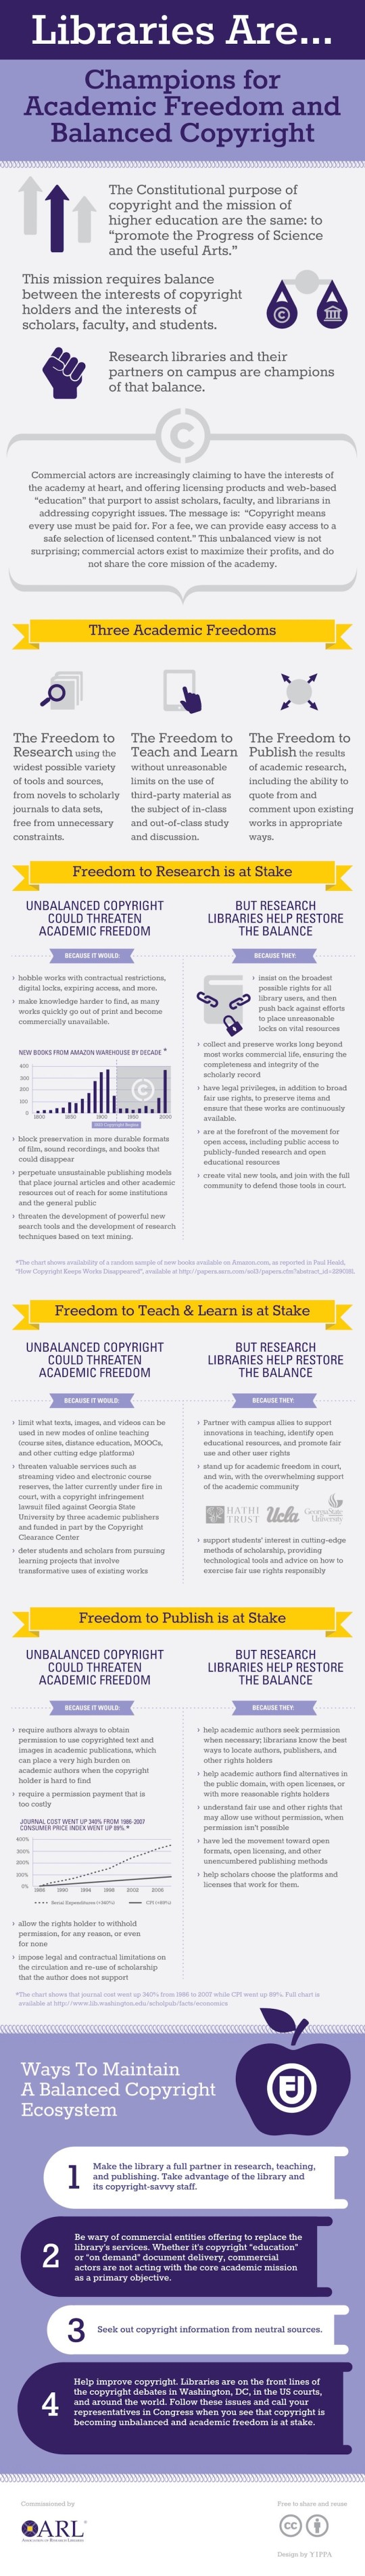 Libraries lead the way to balanced copyright - infographic